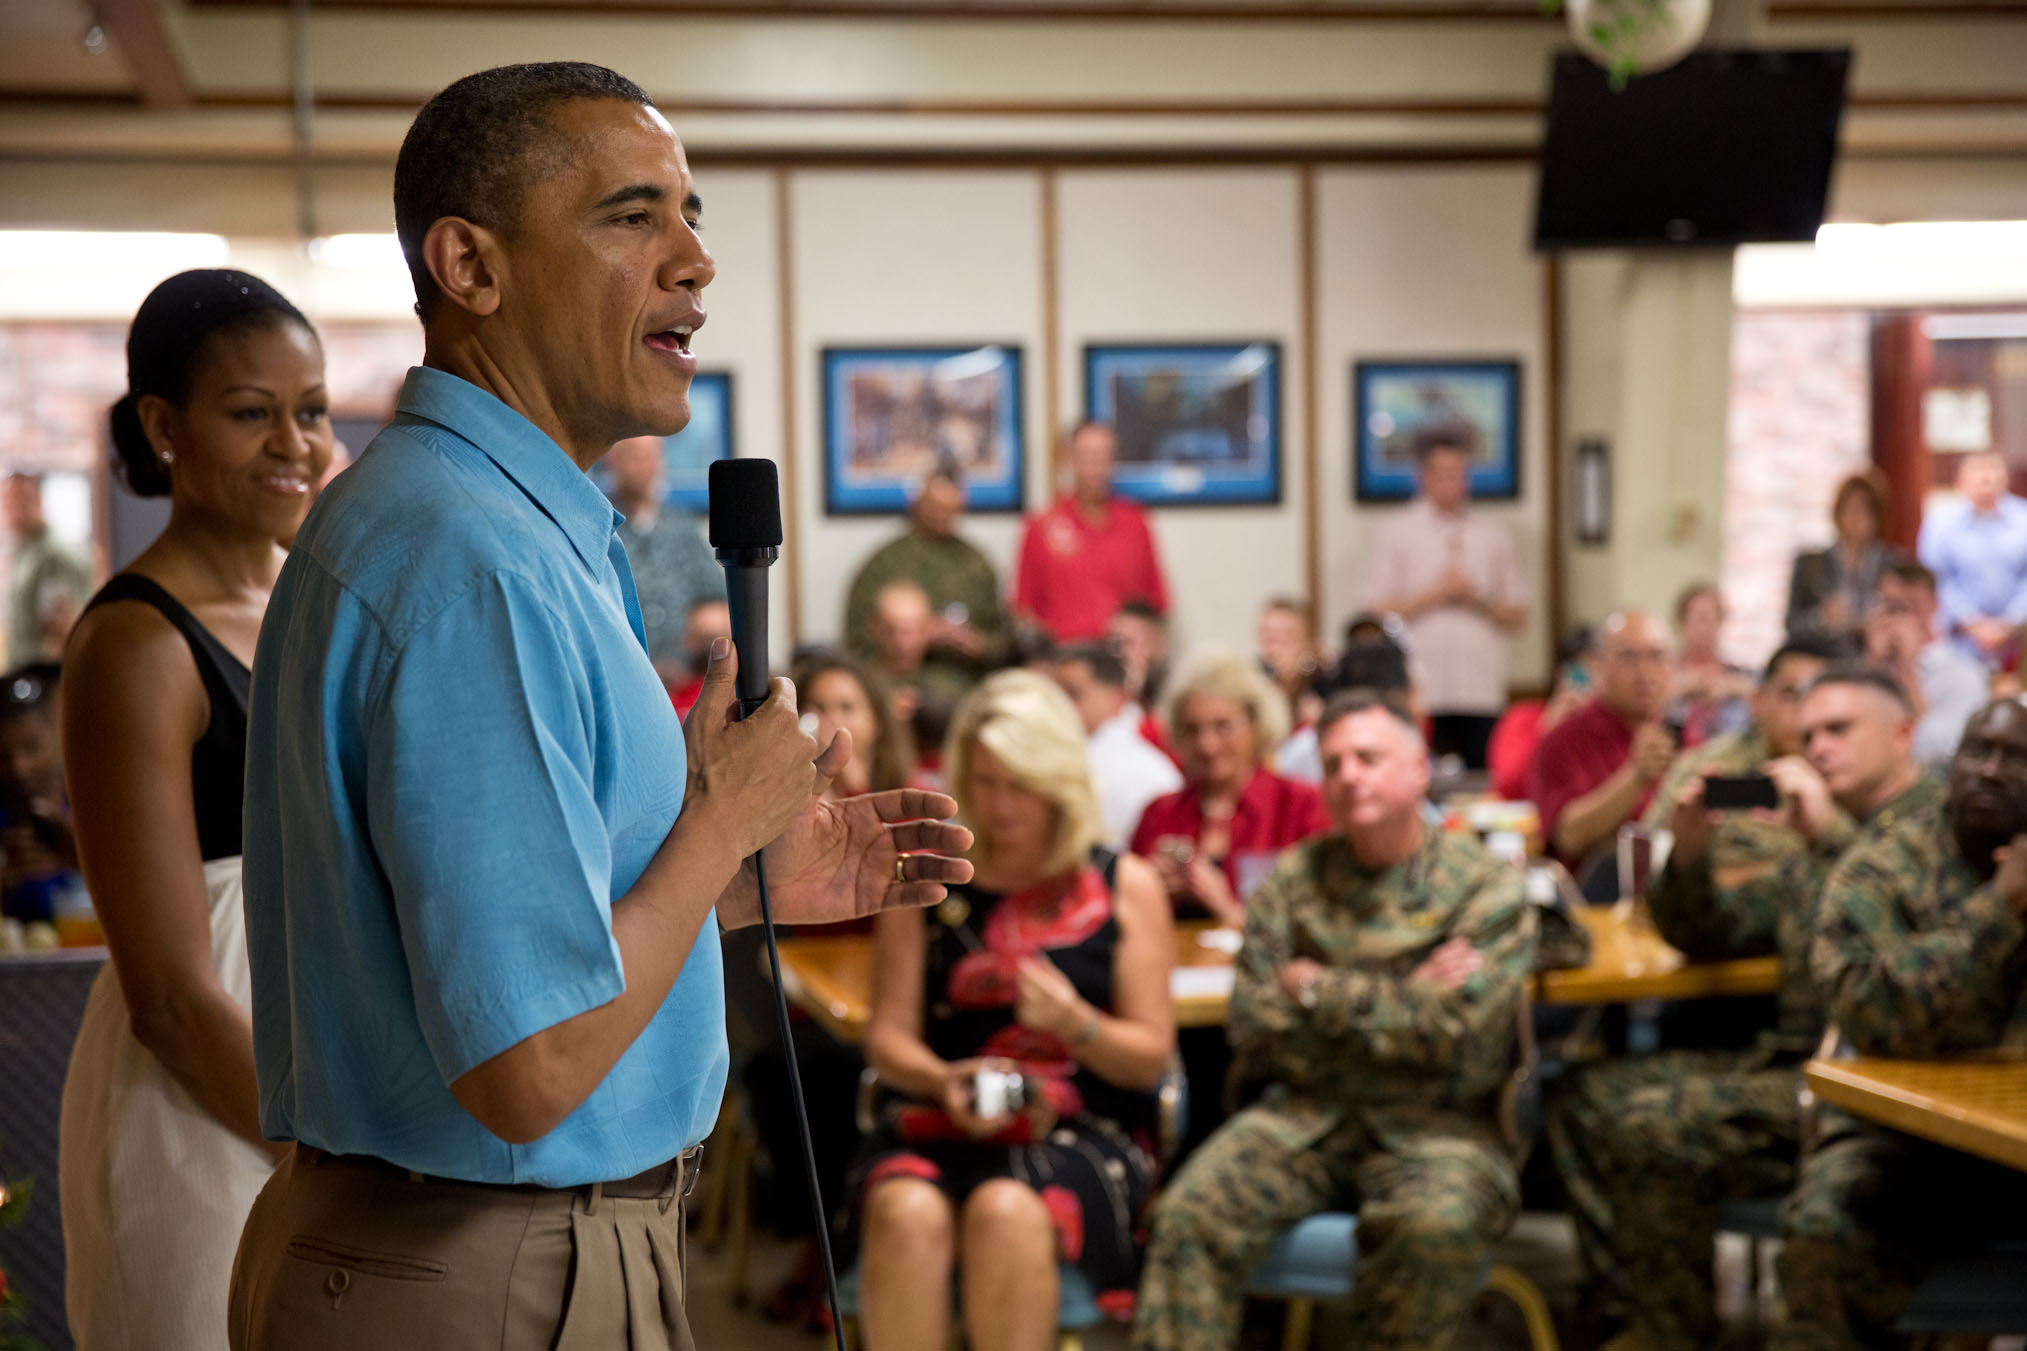 President Obama and First Lady Michelle Obama visit with members of the military at Marine Corps Base Hawaii, Dec. 25, 2012